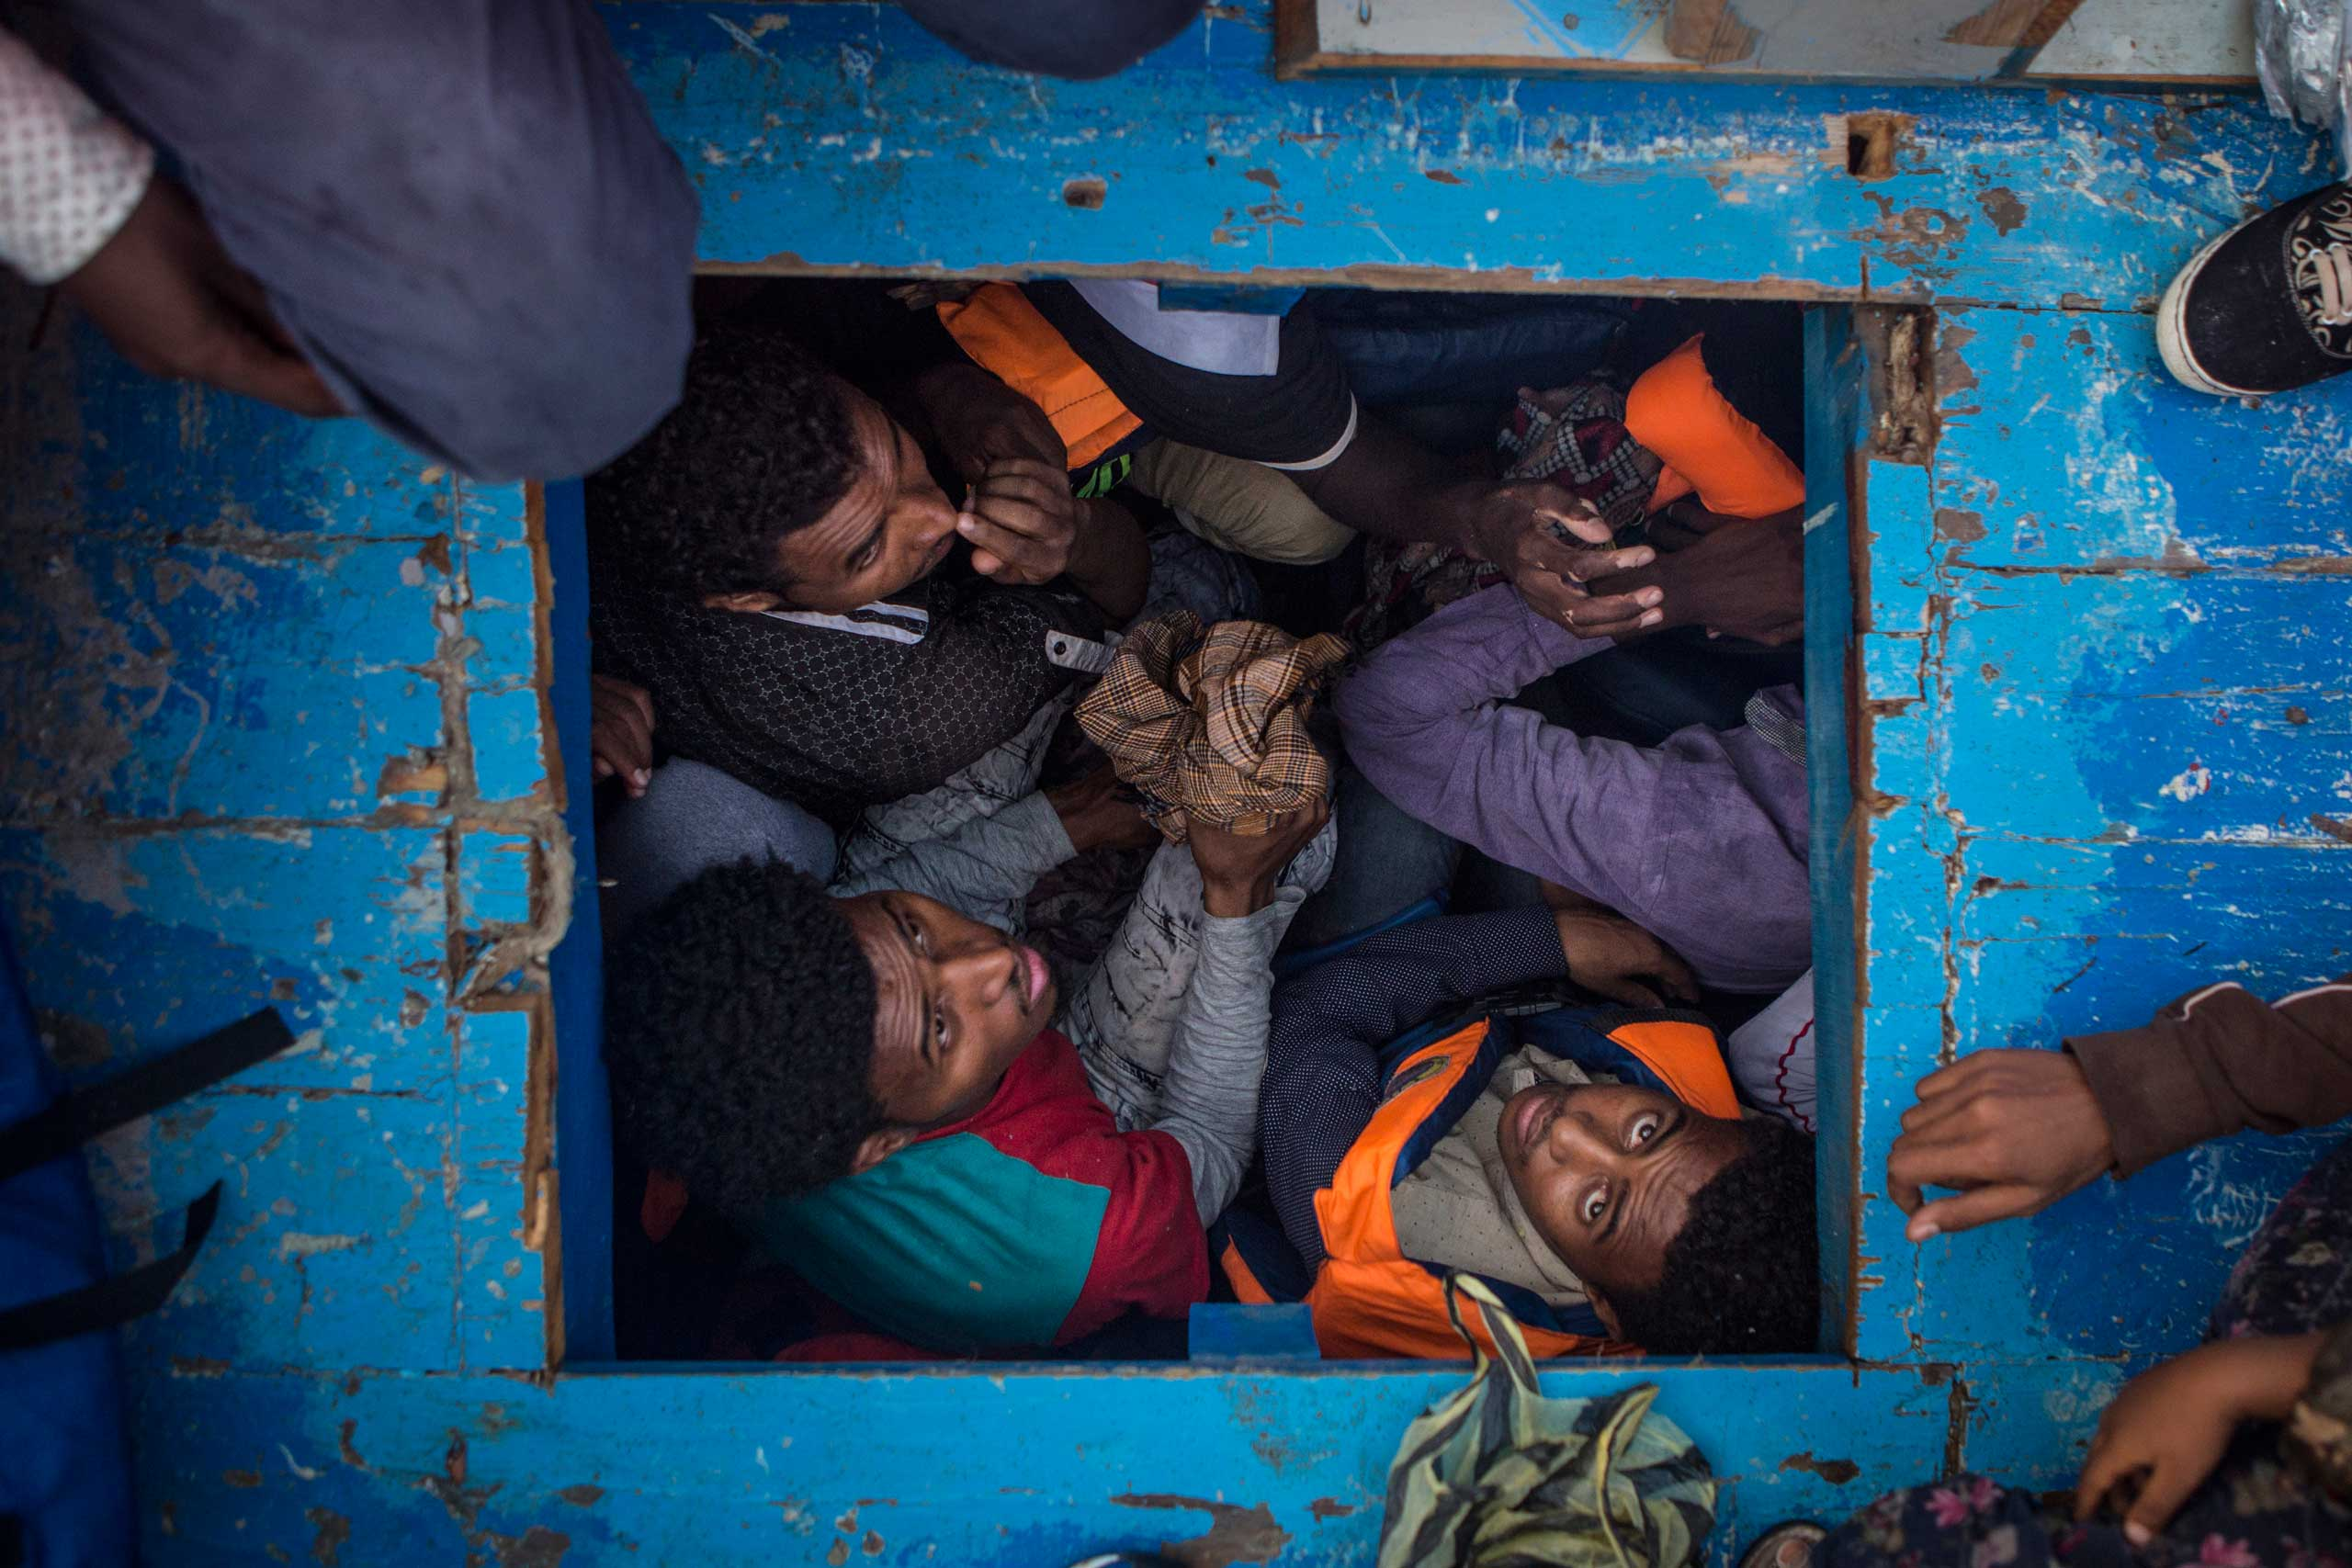 Eritreans migrants seen cramped in the hold of a large wooden boat which carried approximately 540 men women and children, mostly Eritreans.